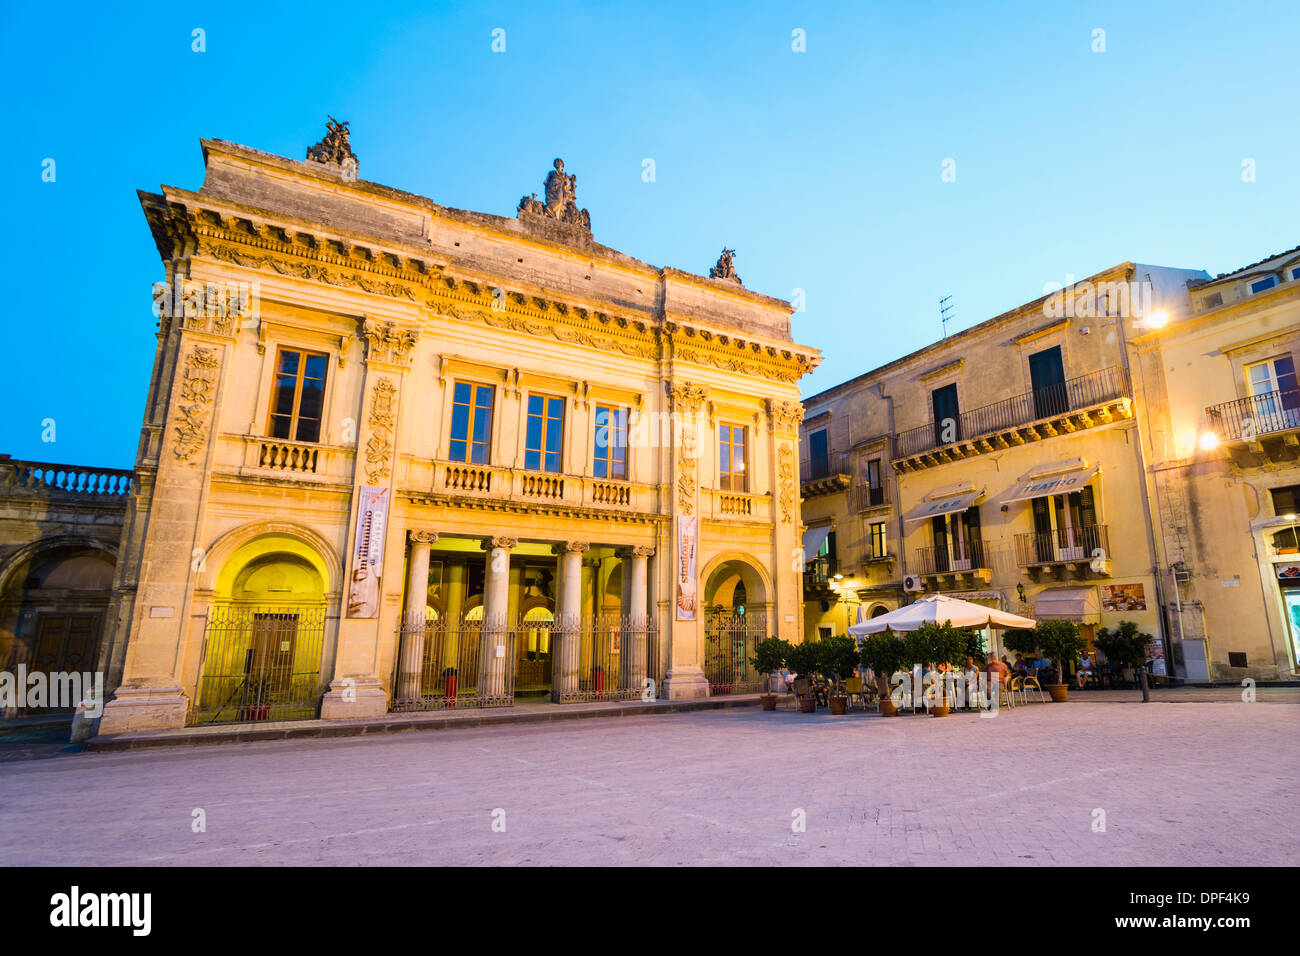 Noto Theatre and cafe at night in Piazza XVI Maggio, Noto, Sicily, Italy, Europe - Stock Image